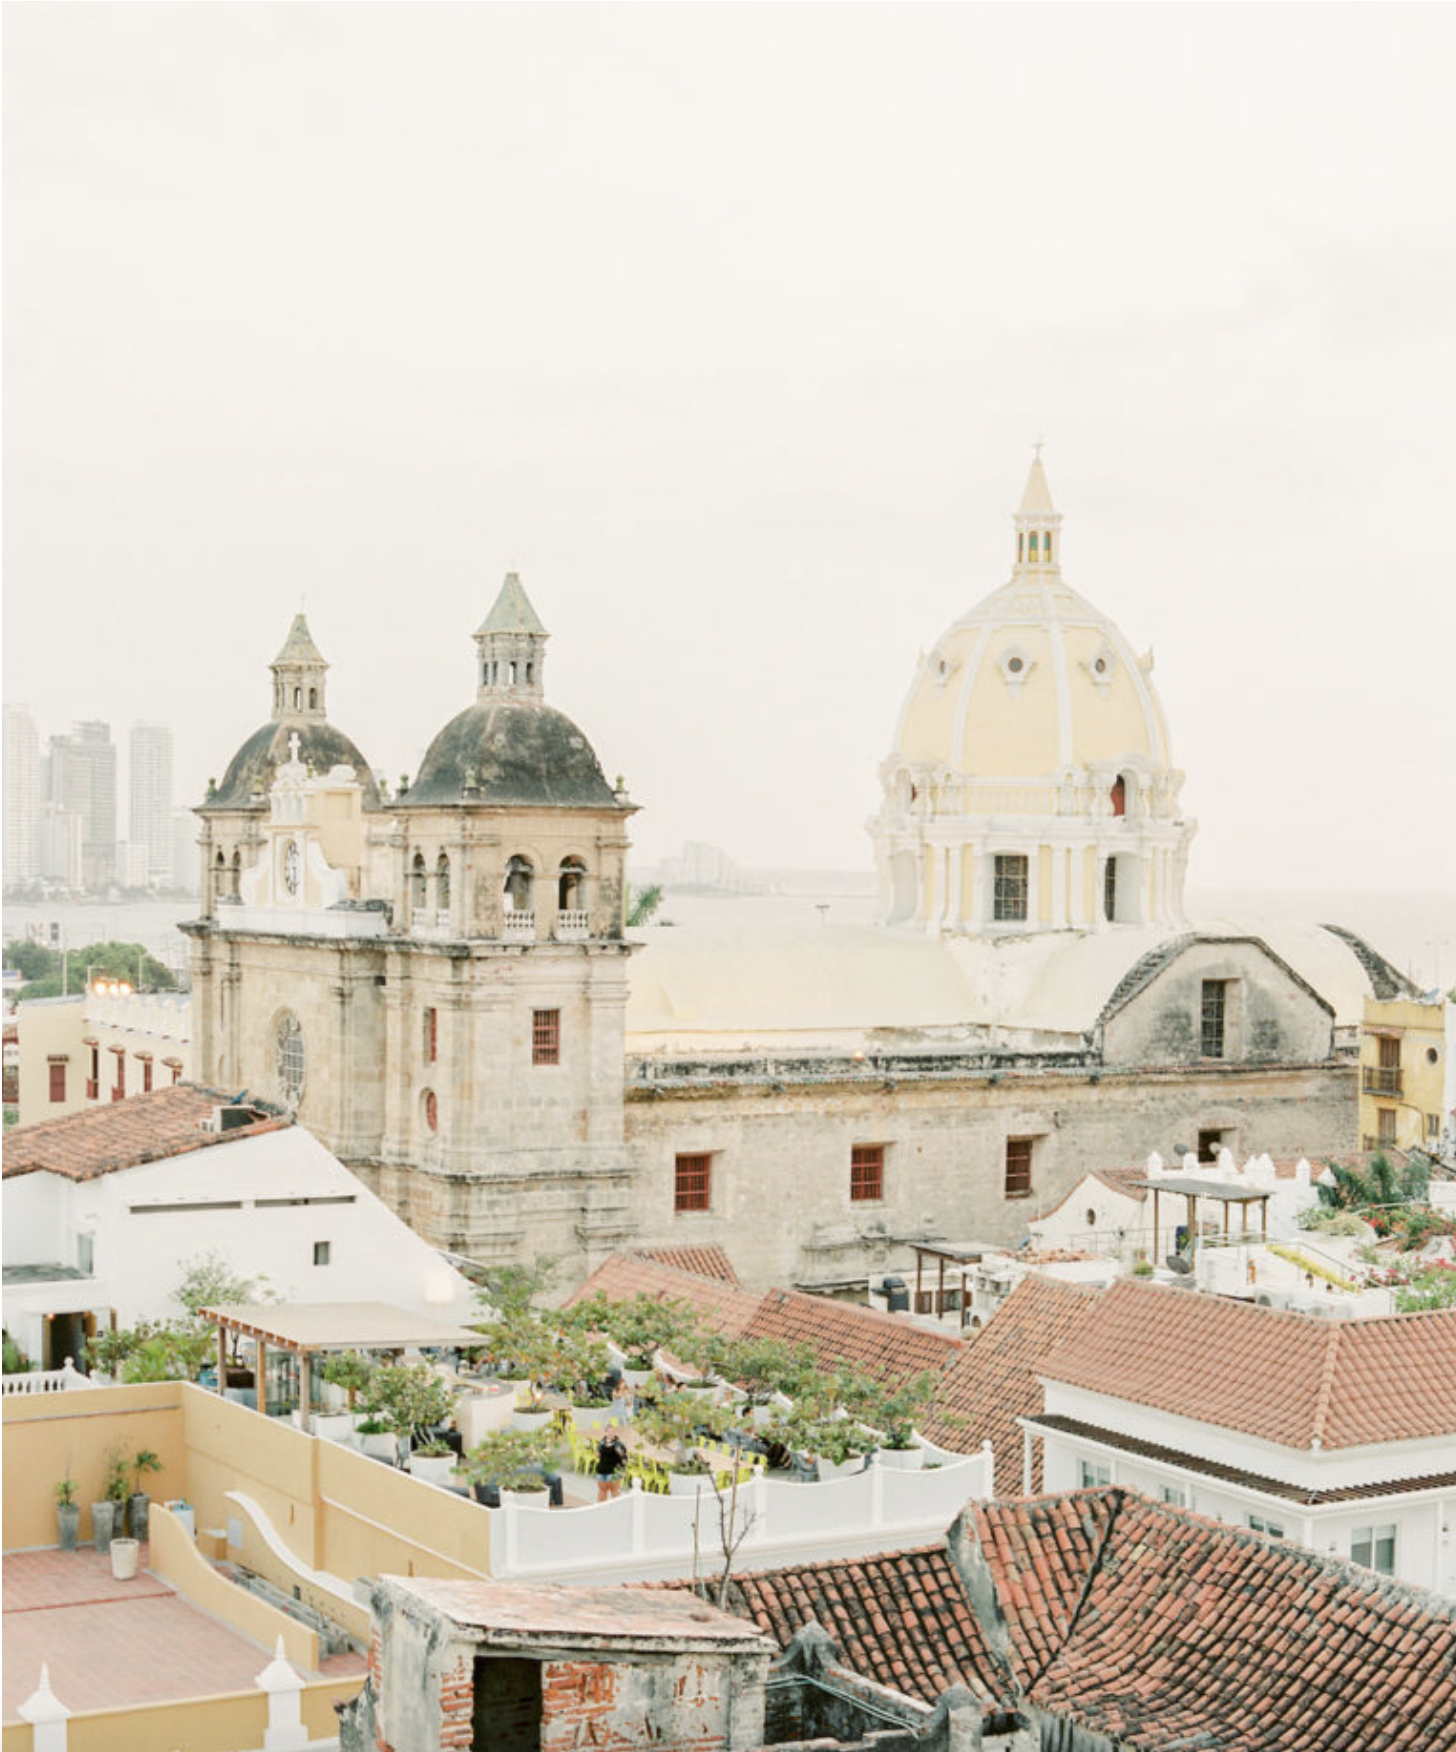 cartagena-columbia-stephanie-brauer.jpg